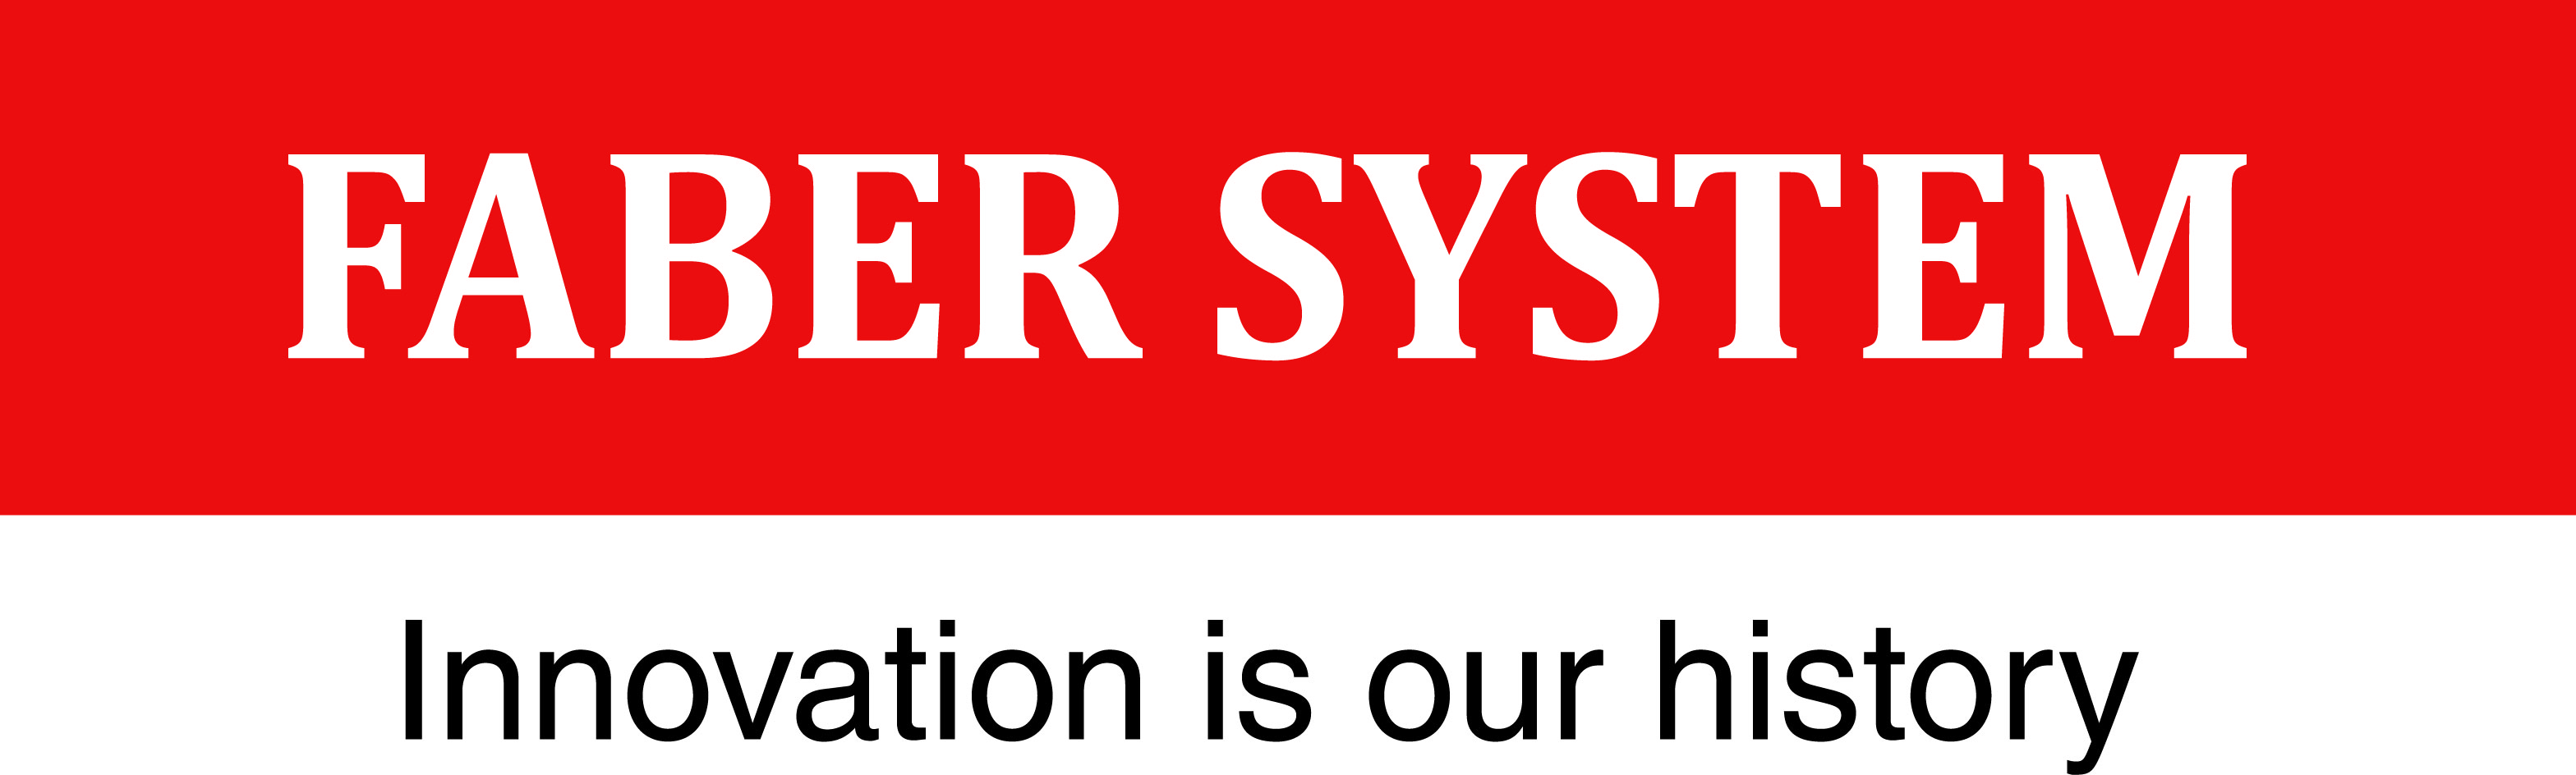 Faber System